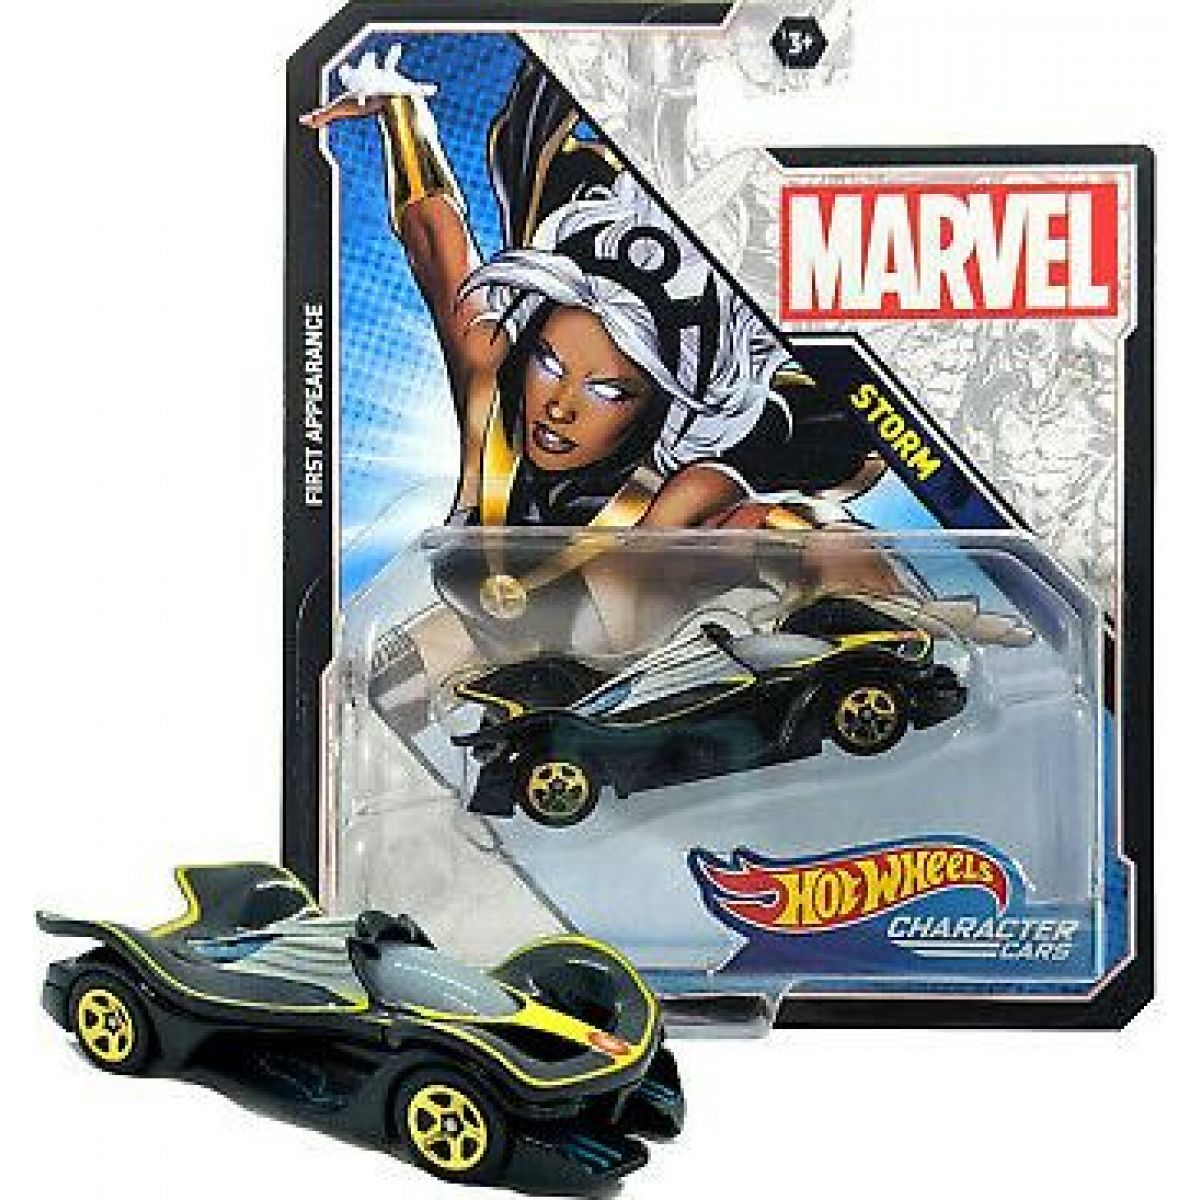 Hot Wheels Marvel Character Cars Storm